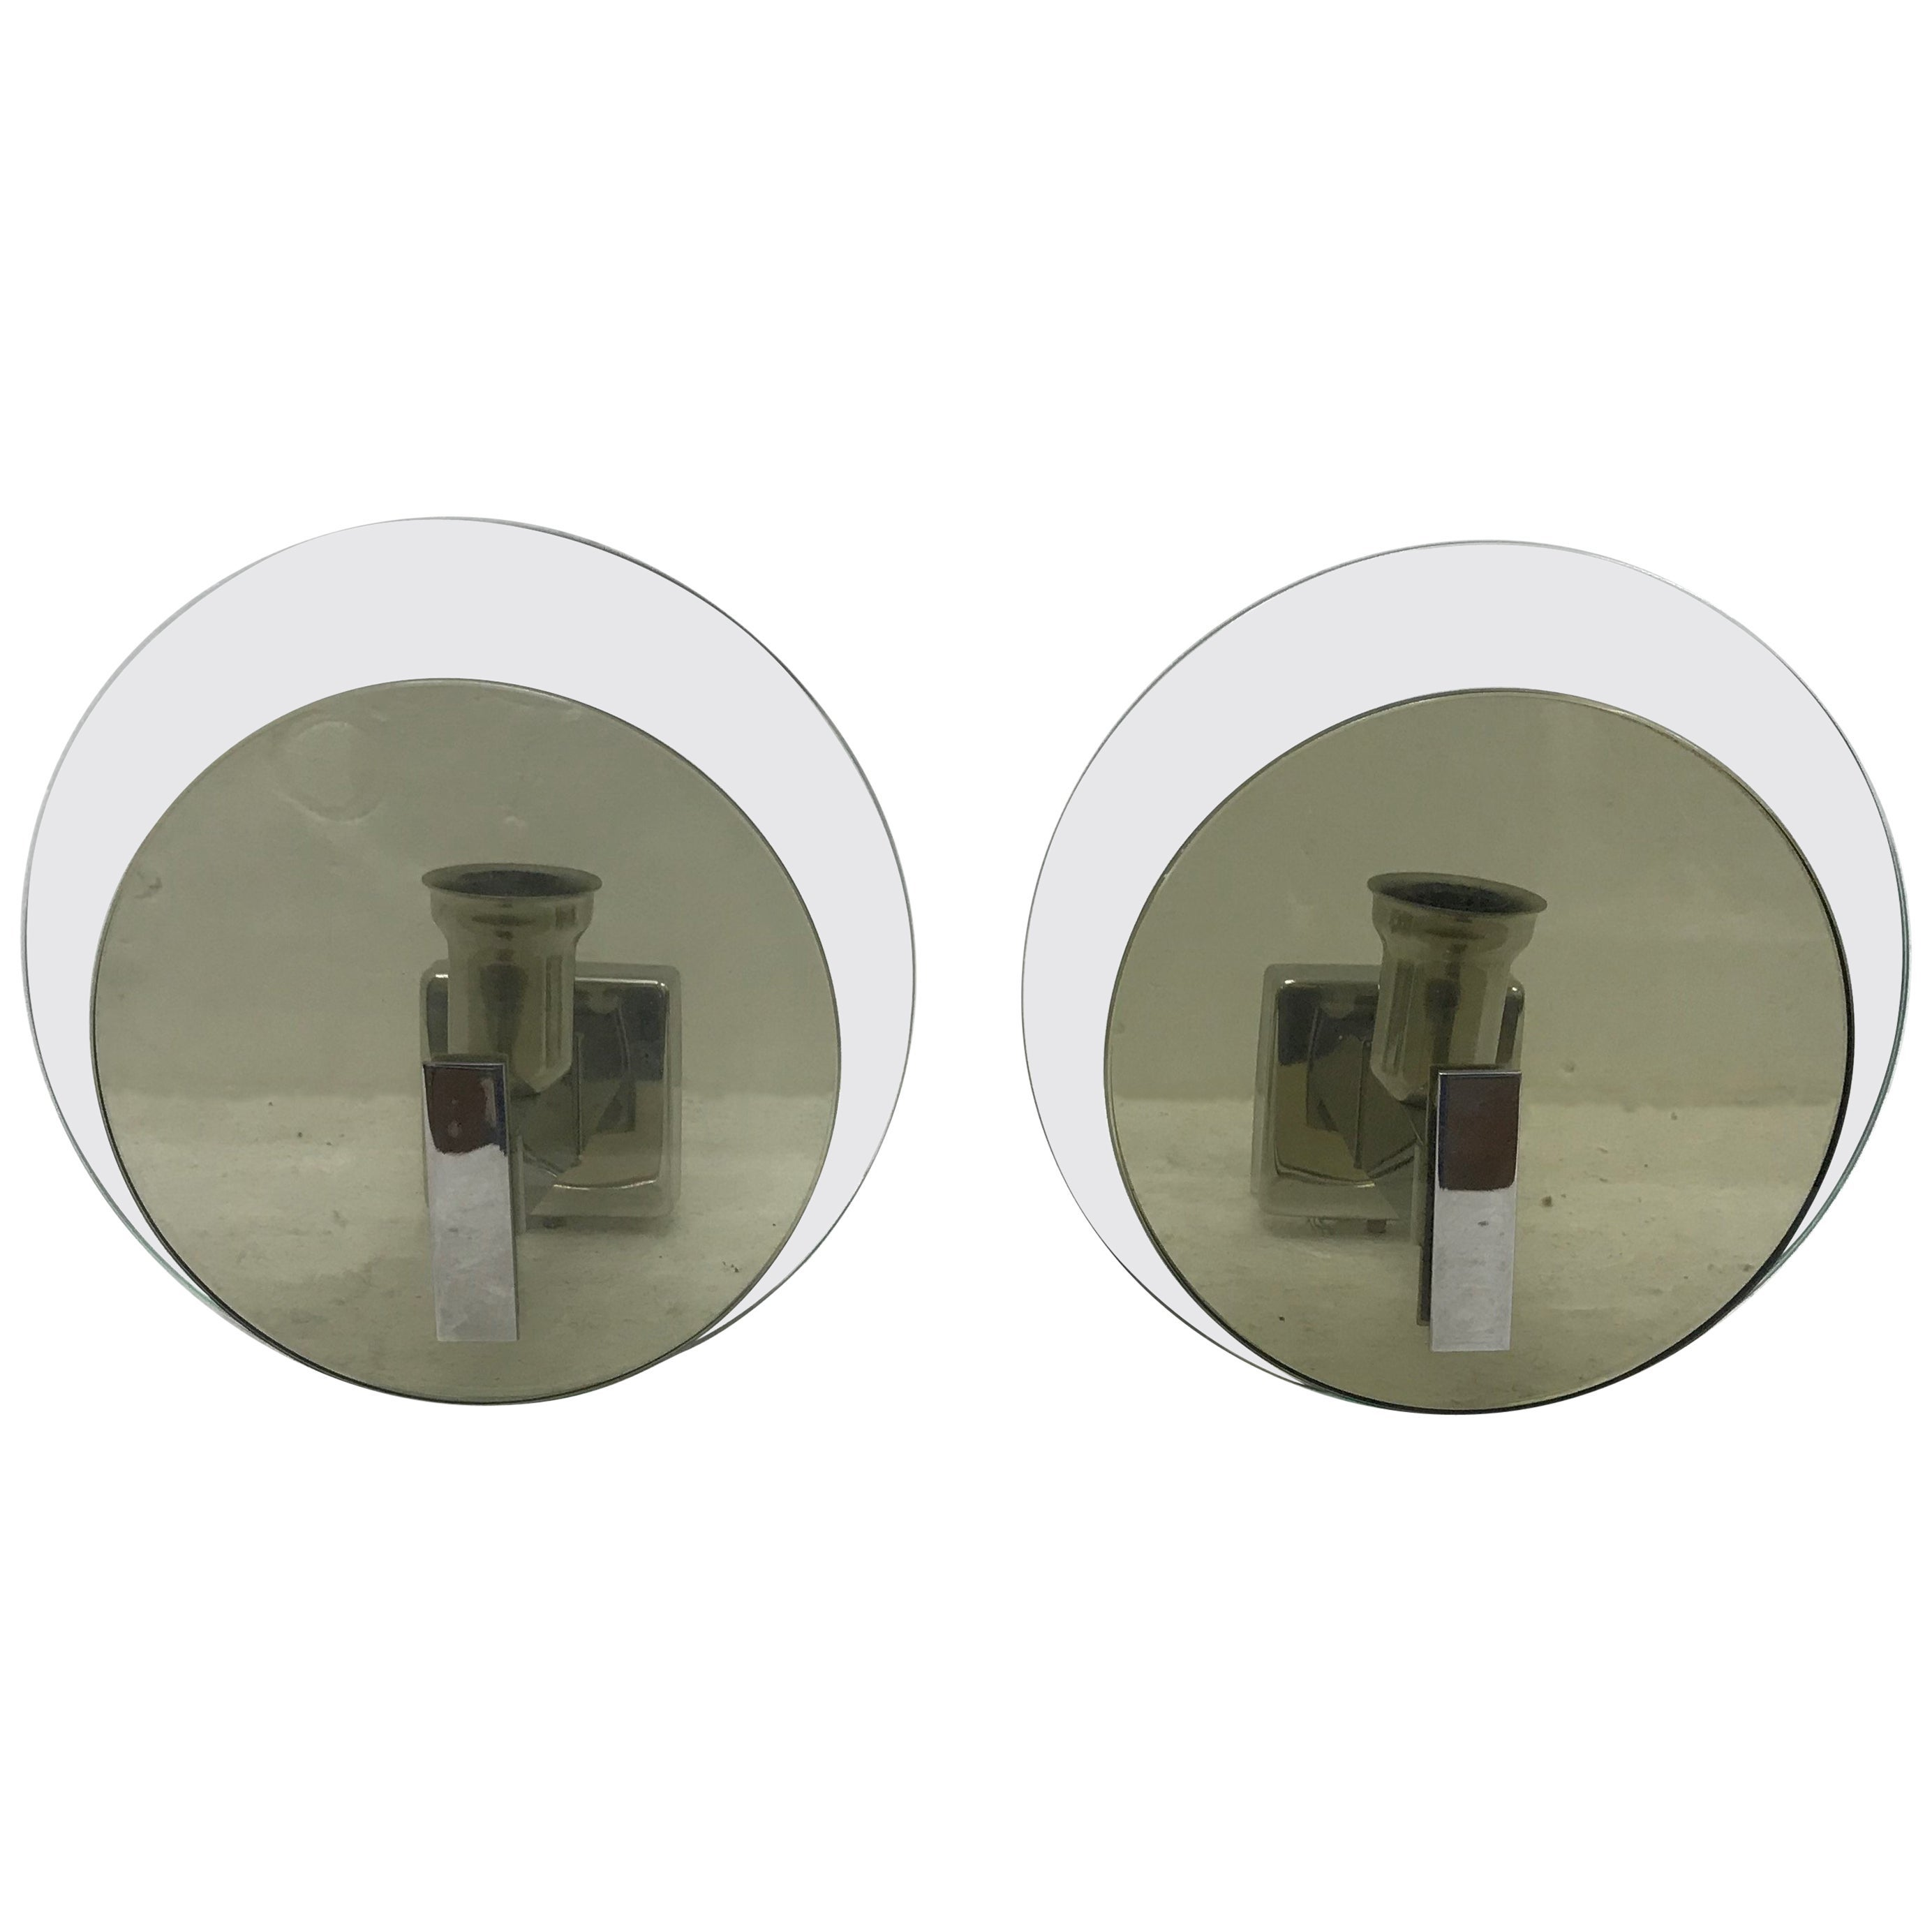 Two Space Age Italian Steel and Glass Wall Sconces, Lupi Cristal Luxor, 1960